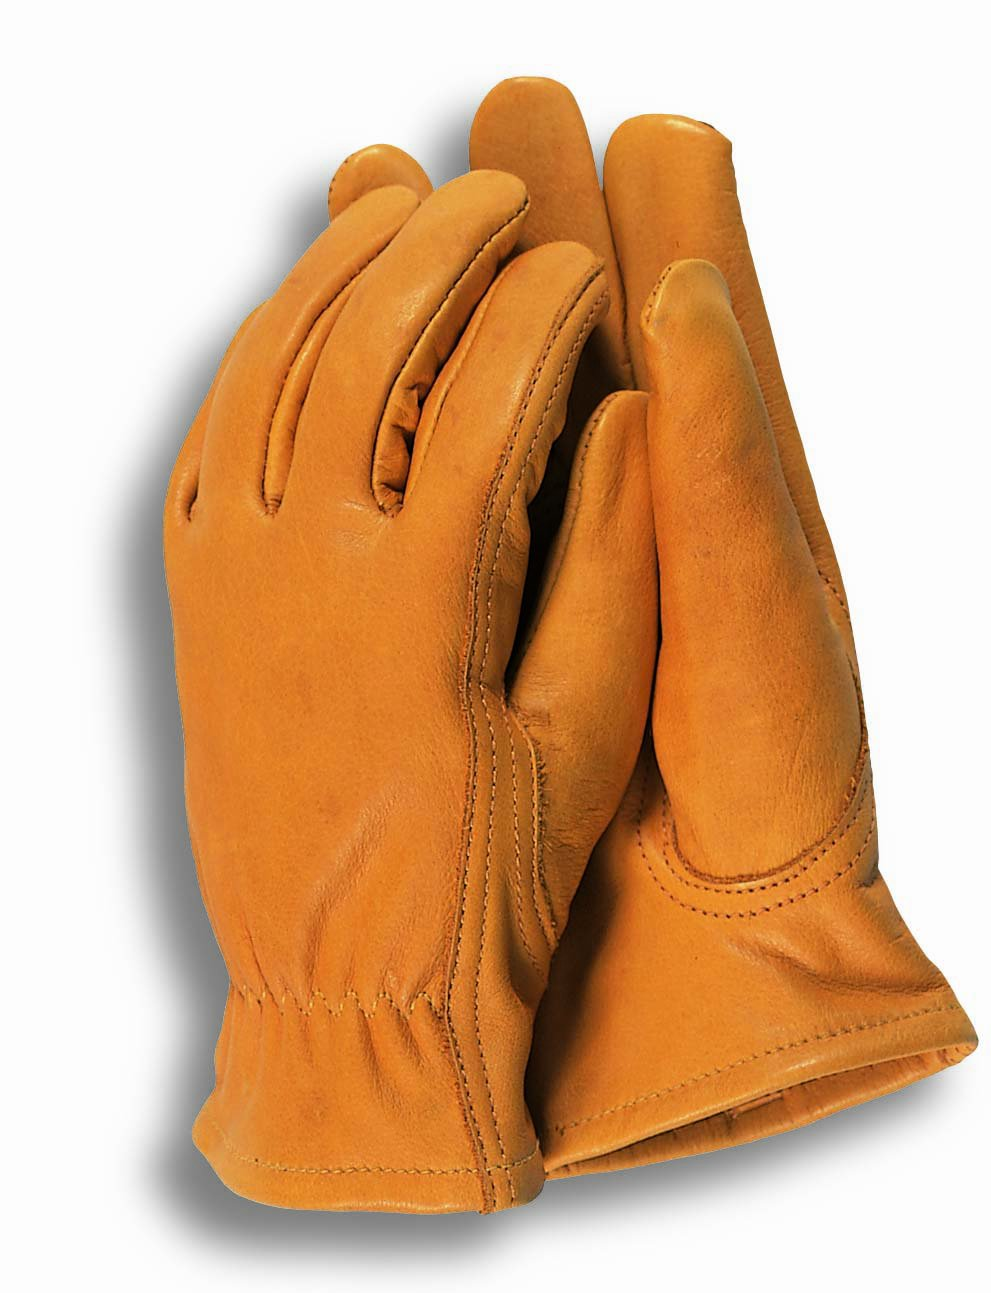 Town & Country TGL105M Premium Leather Ladies Gloves Medium Cowhide Gloves Fixings and Hardware Items Workwear and Safety Products